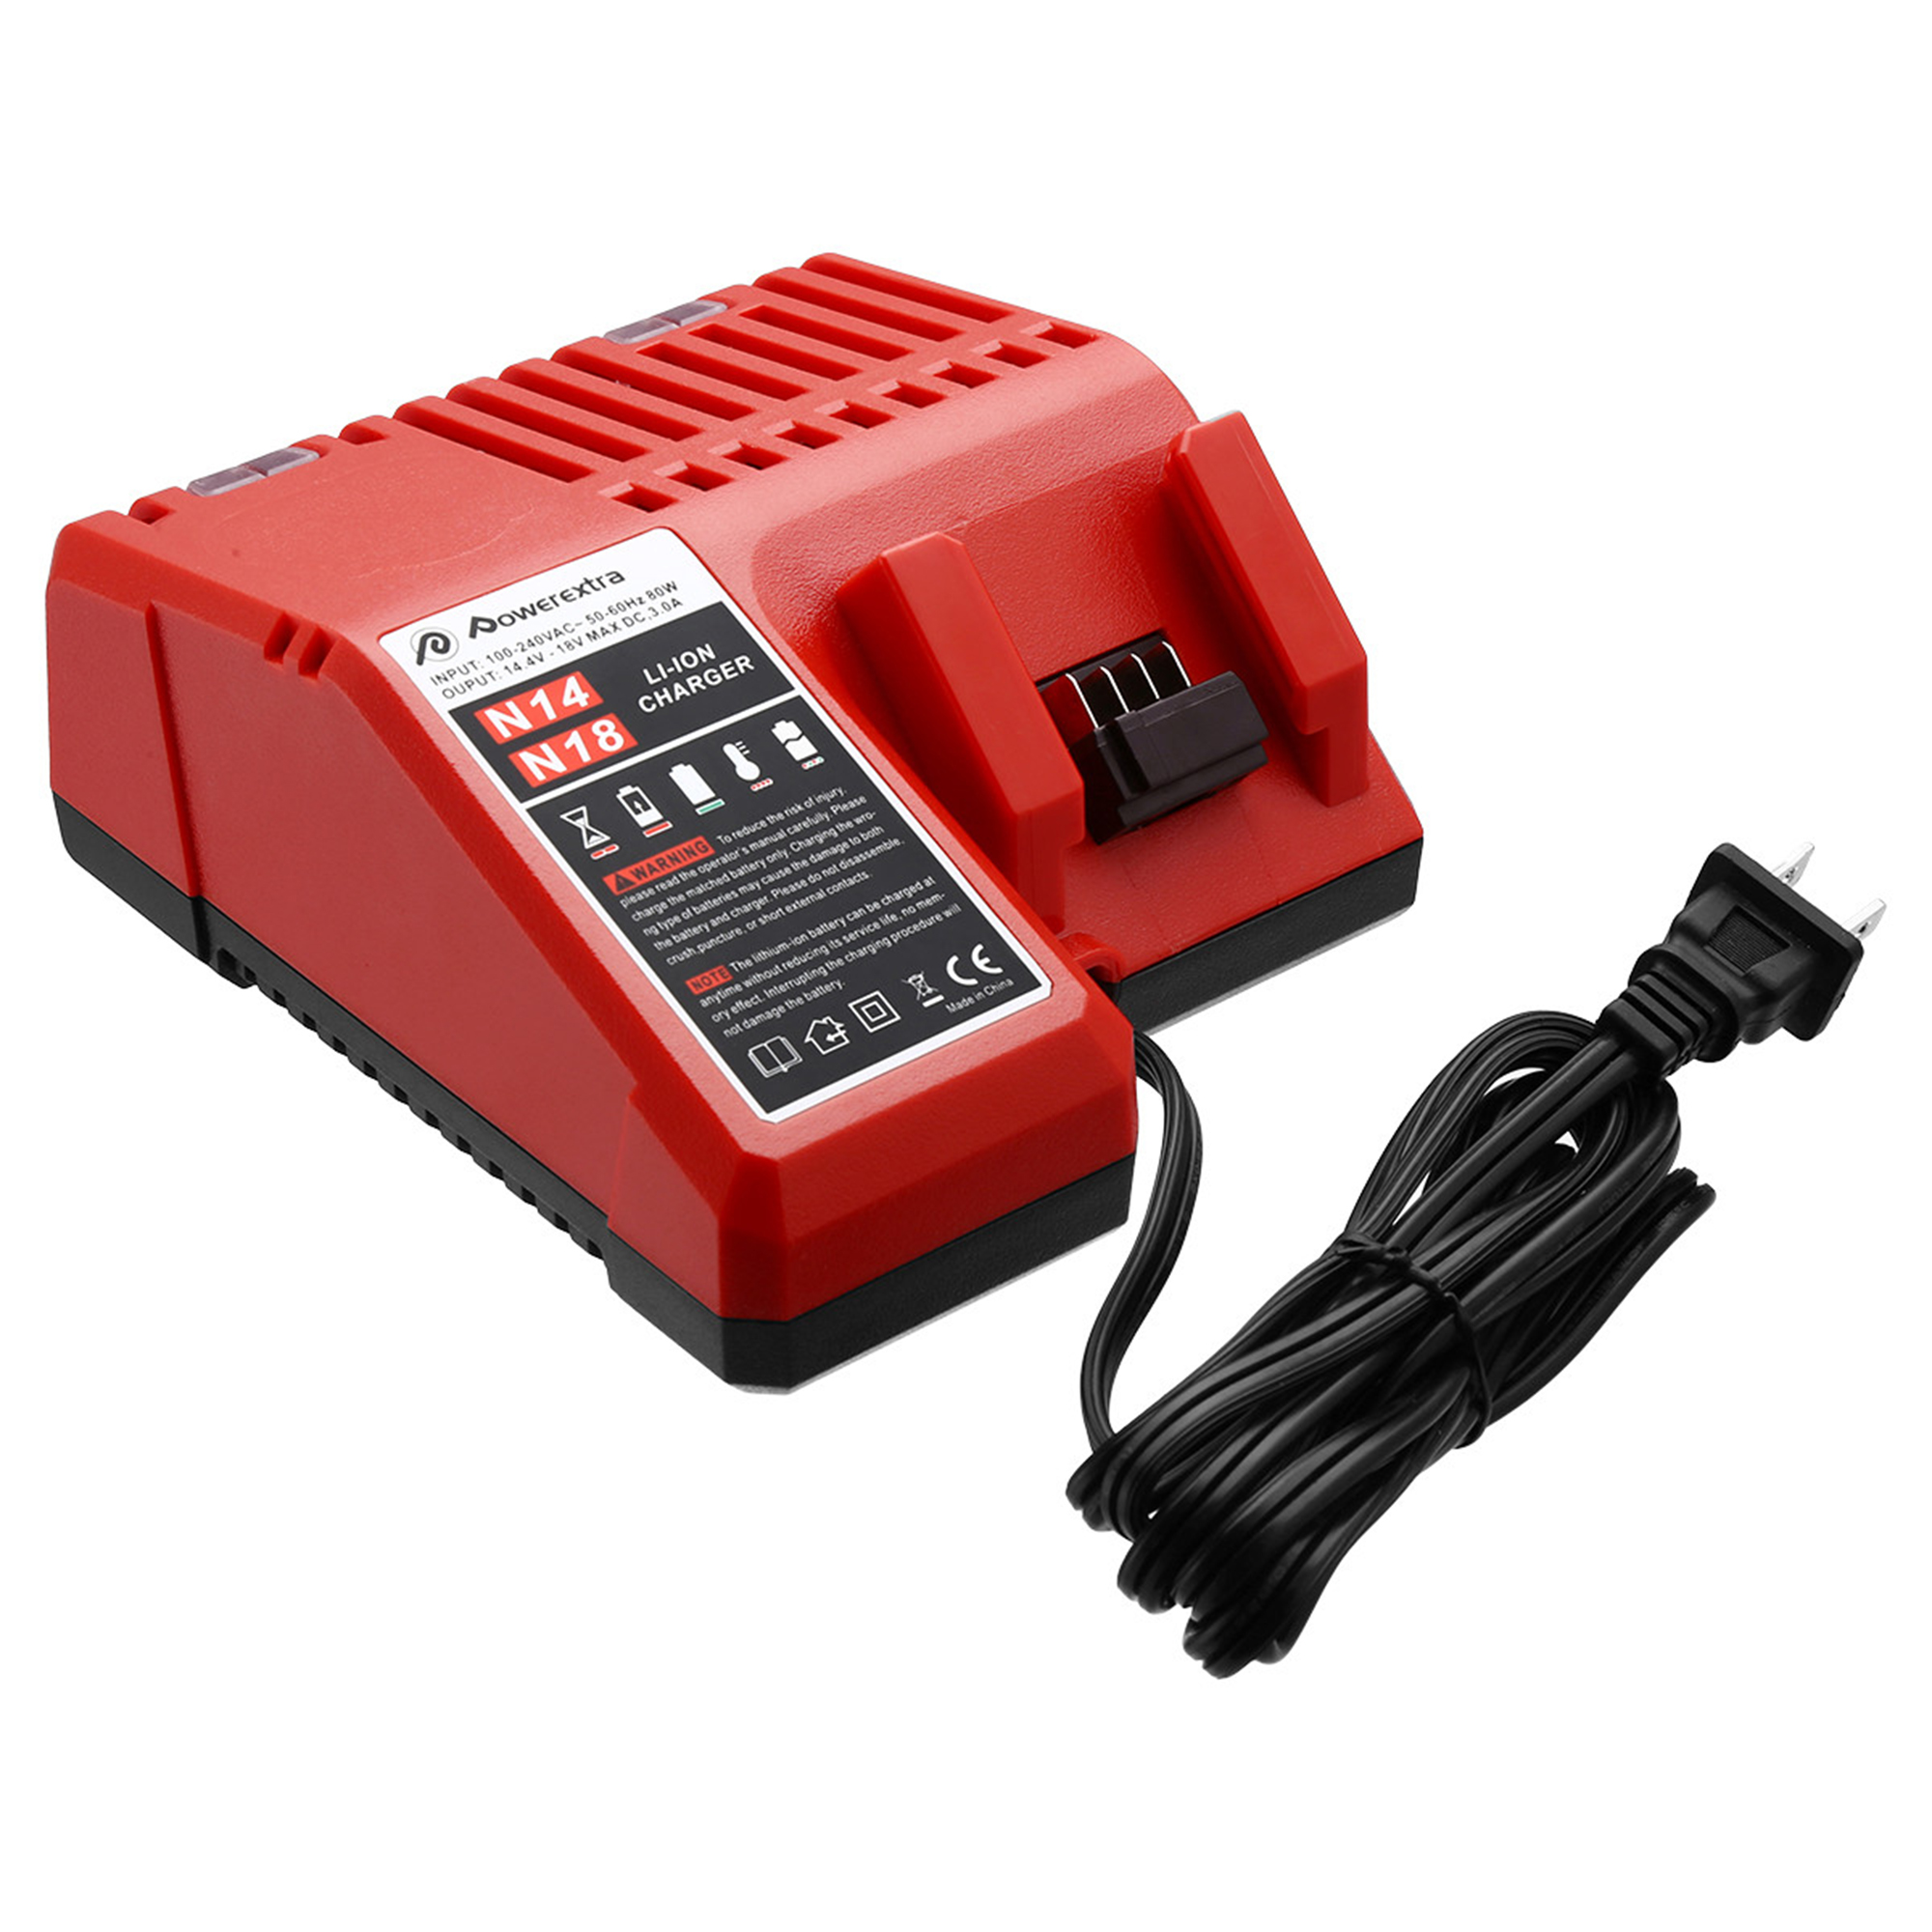 Powerextra M18 Lithium-ion Battery Charger for Milwaukee Battery M18 48-11-1815 With AC Cord 1.75m